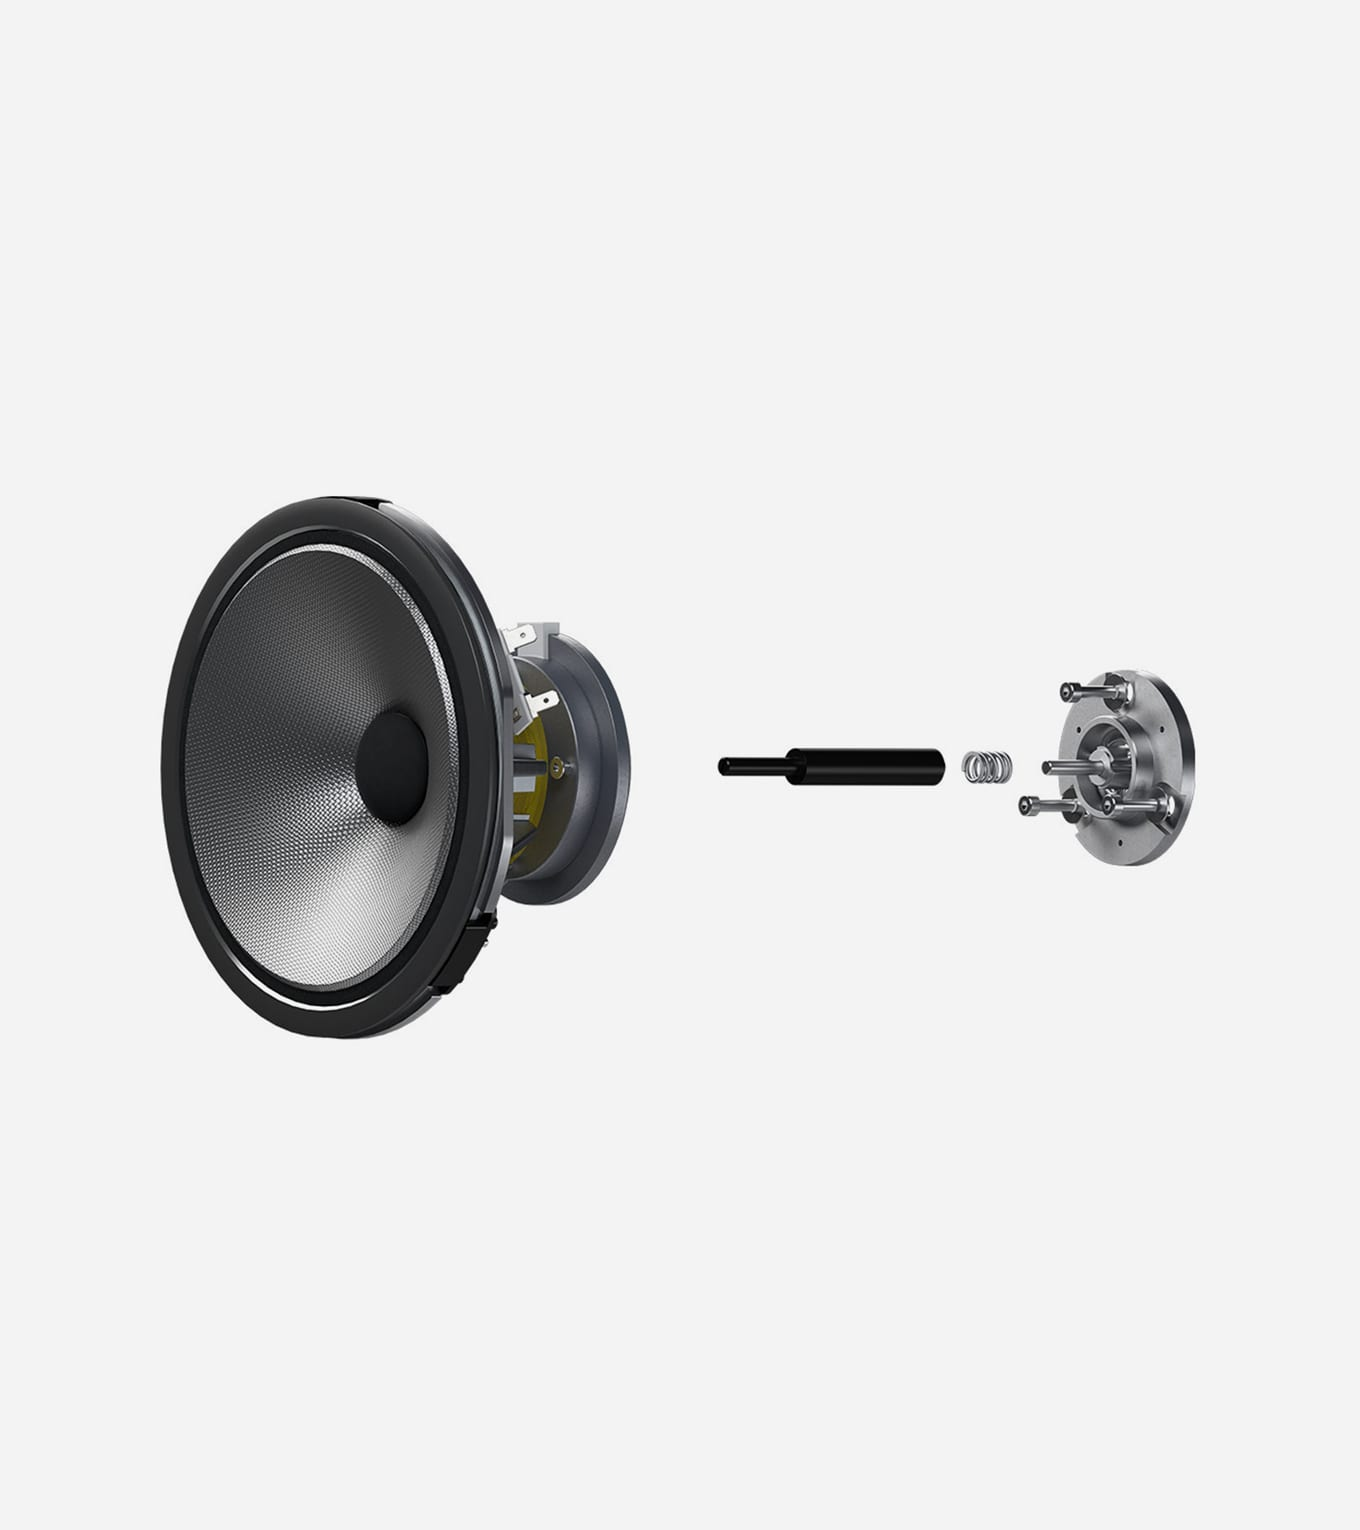 The B&W 702 Signature speaker is aesthetically beautiful and sonically hard to beat for its price. But is it right for you? Read on to find out.